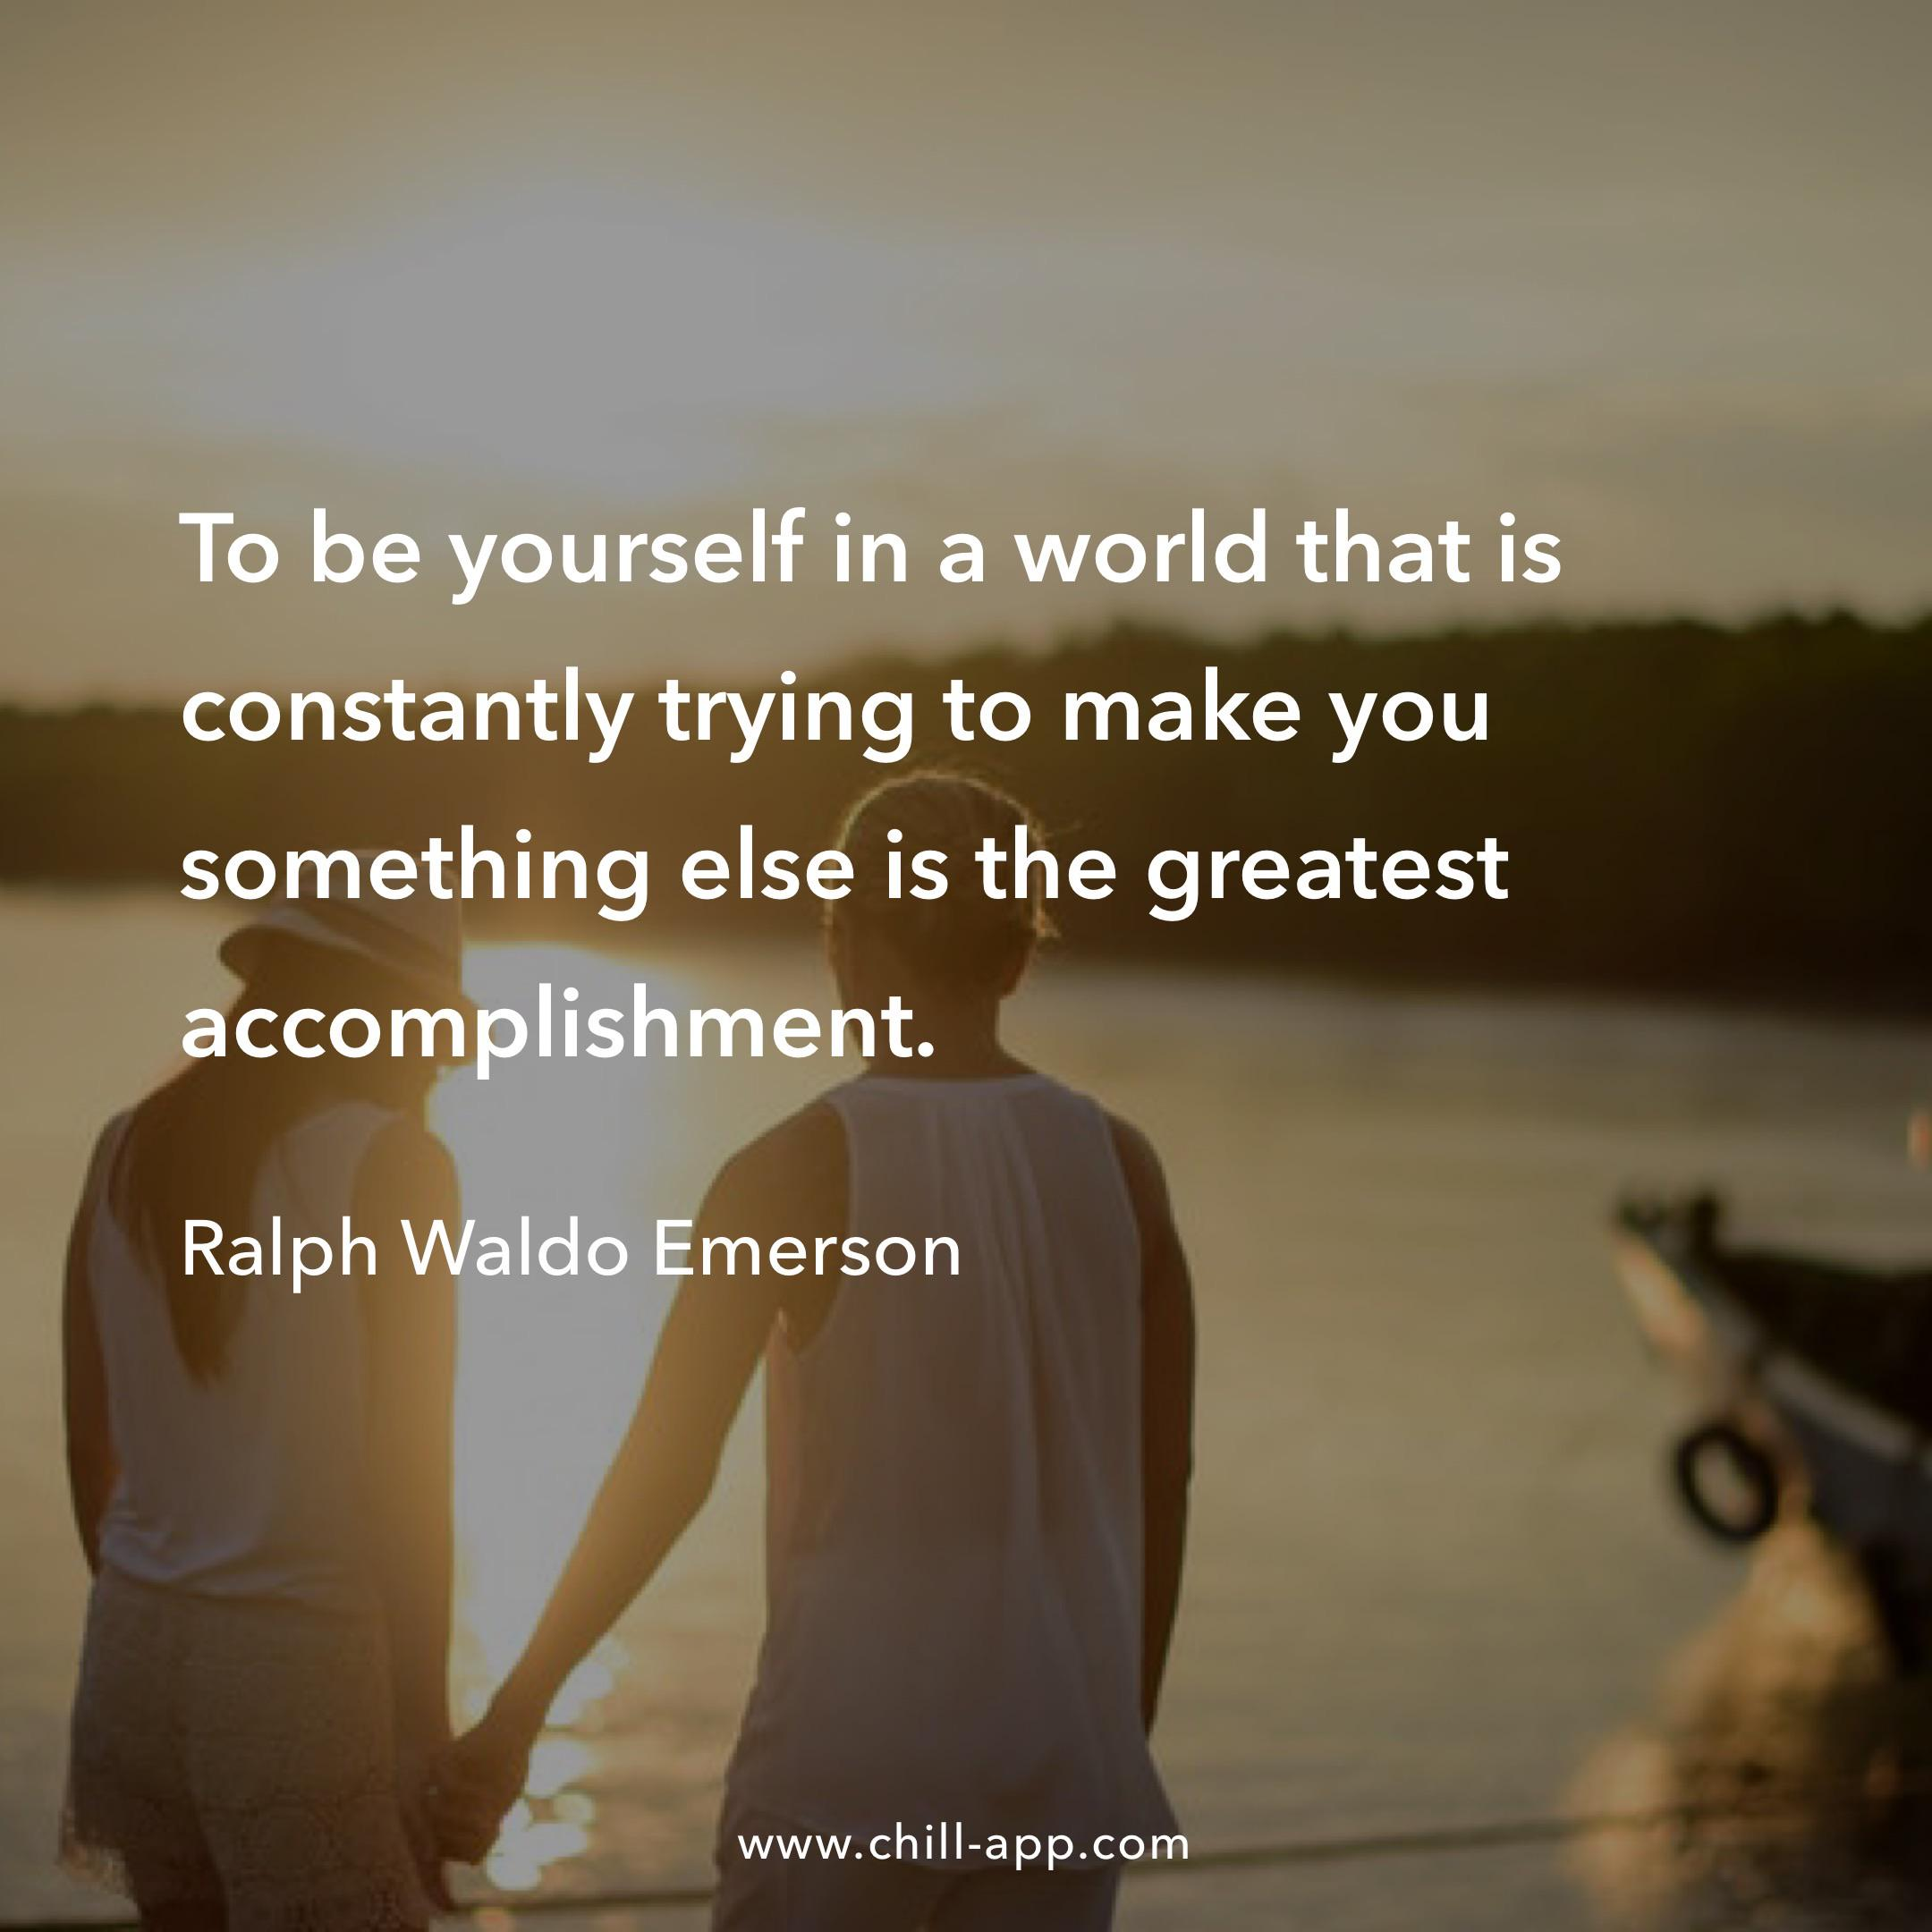 Be yourself…Ralph Waldo Emerson [Image]